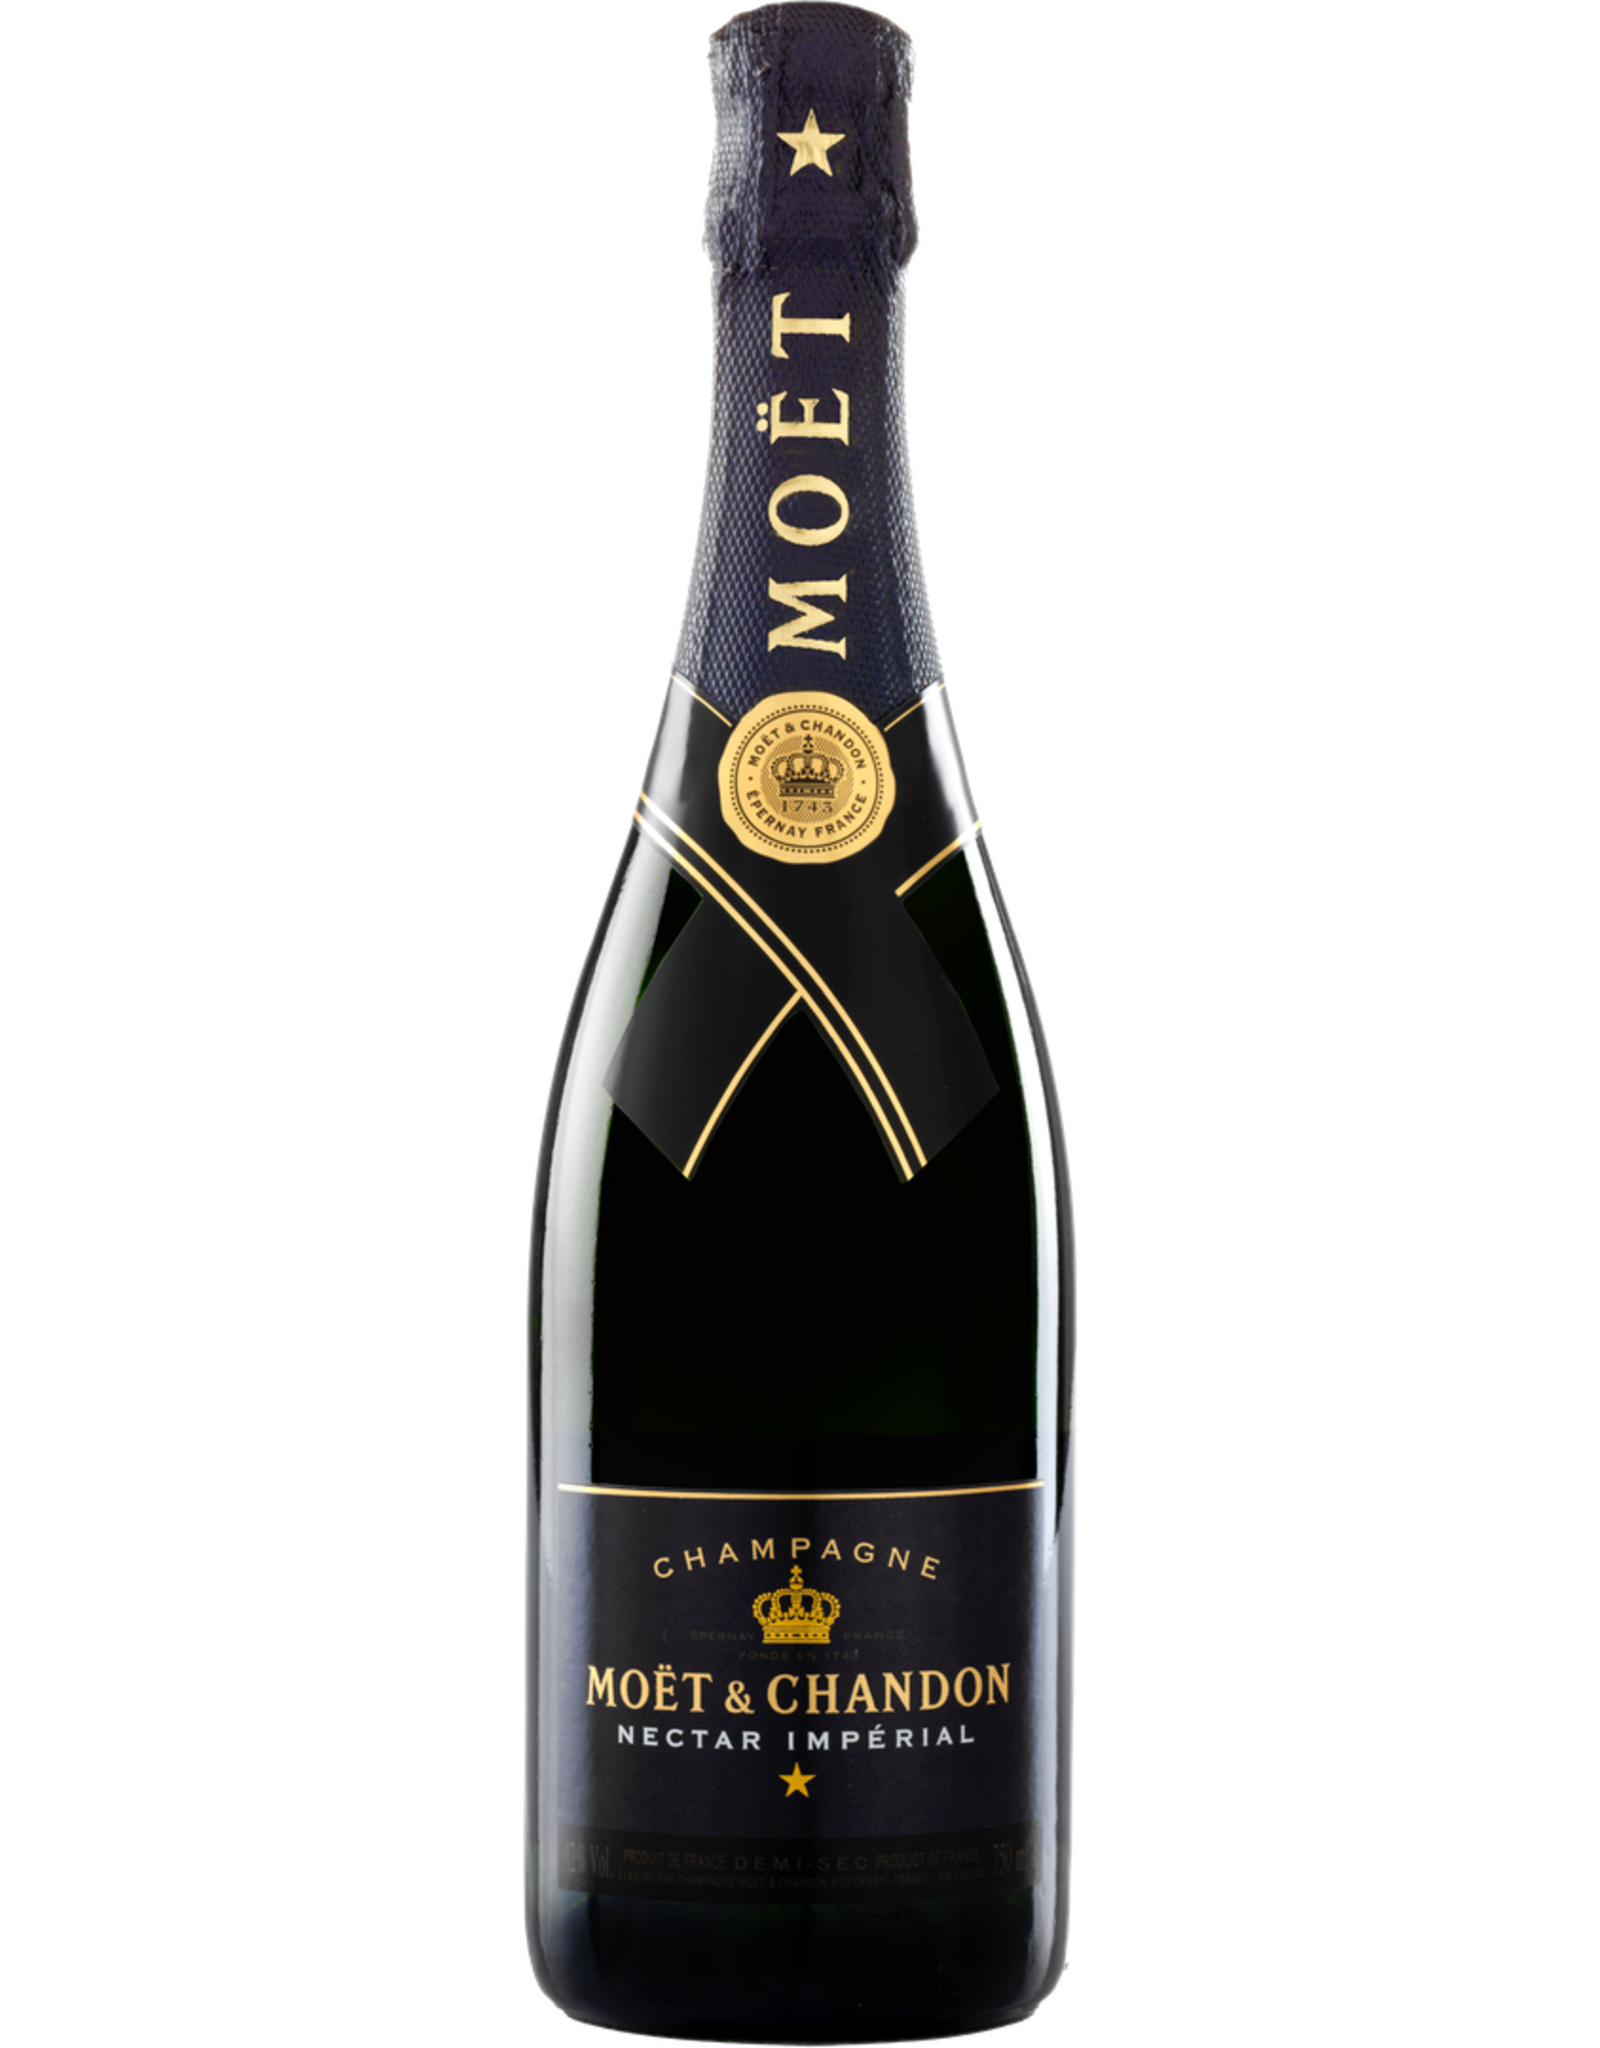 Moet & Chandon Moet & Chandon Nectar Imperial 75cl